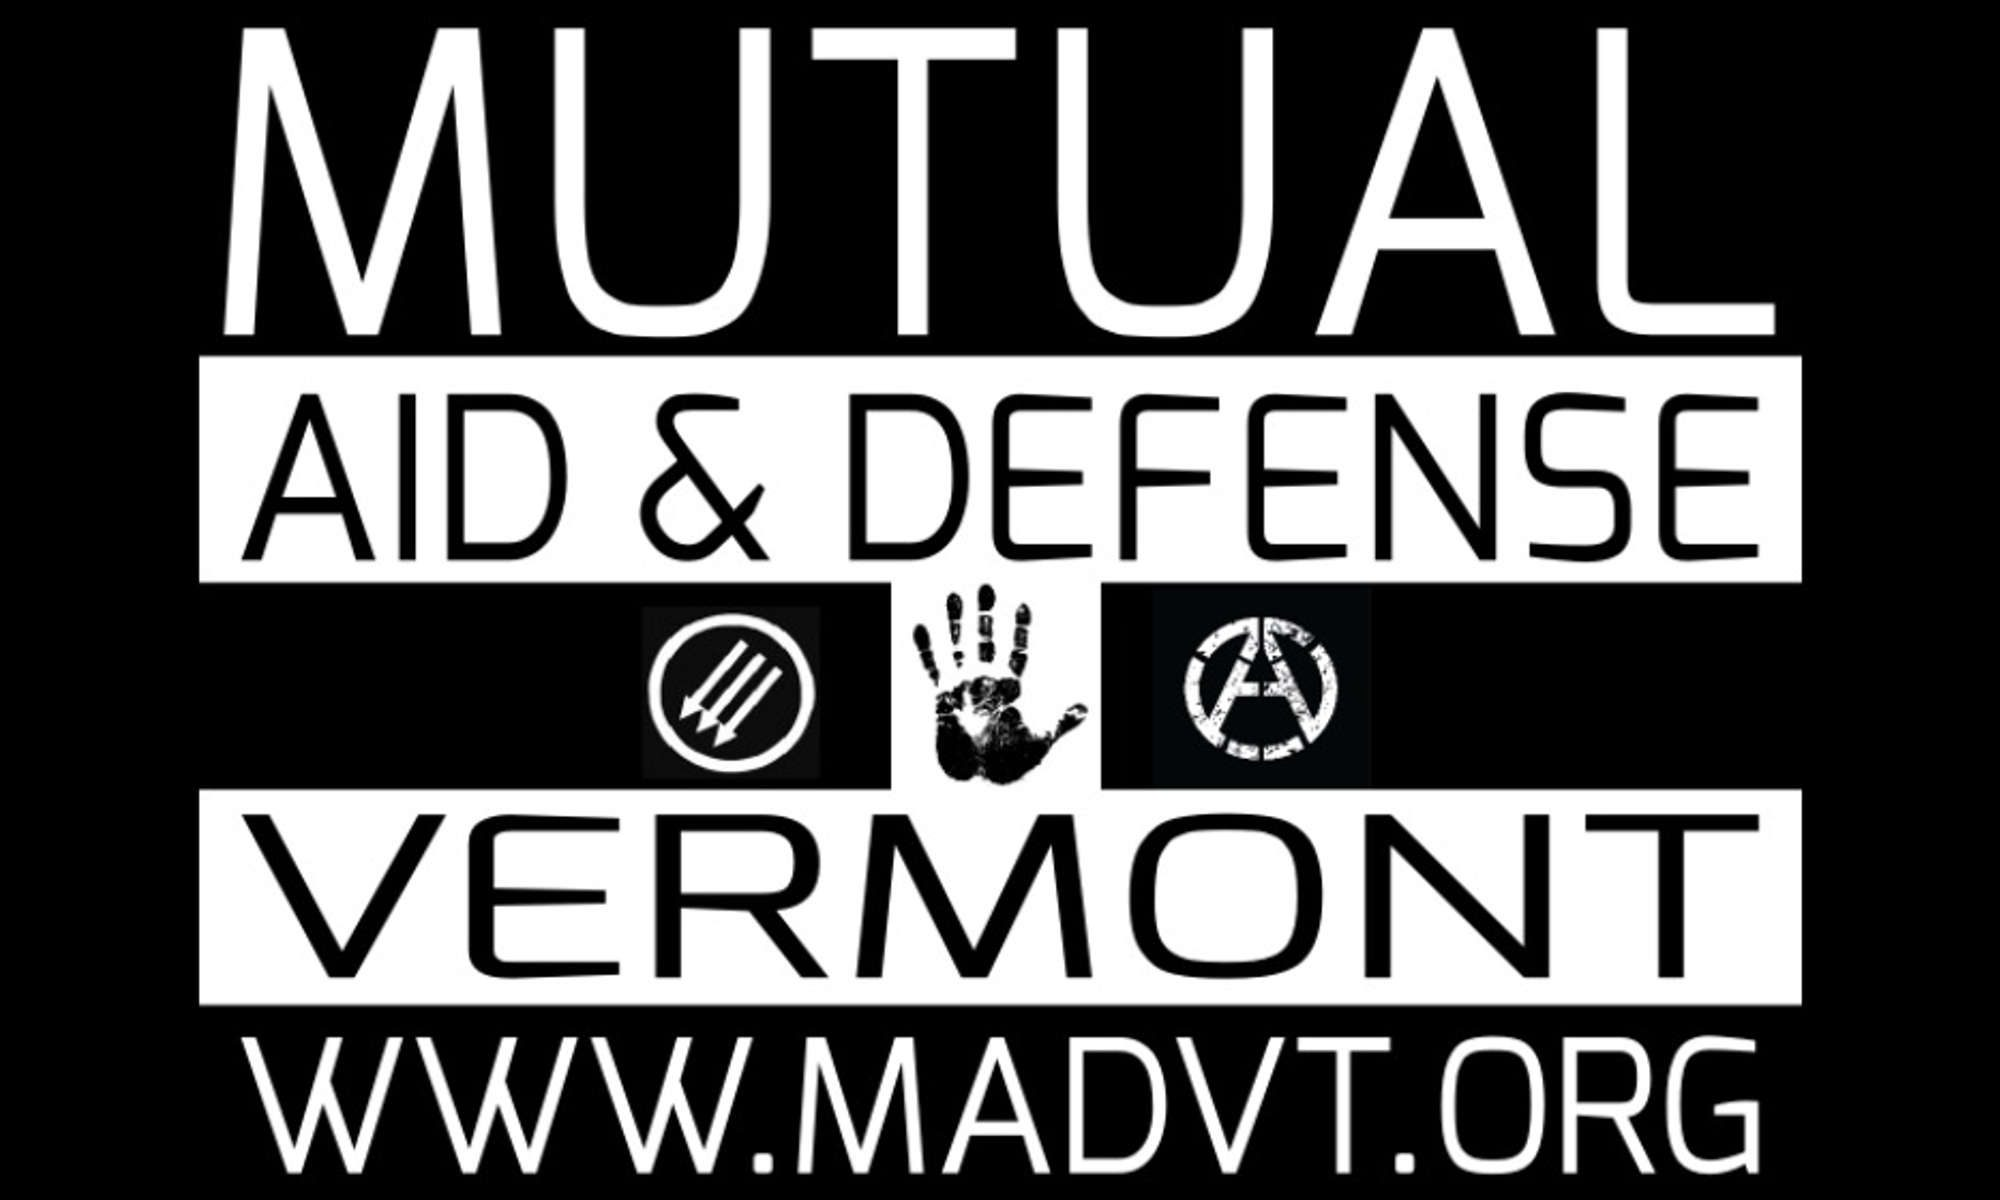 MADVT - Mutual Aid and Defense VT